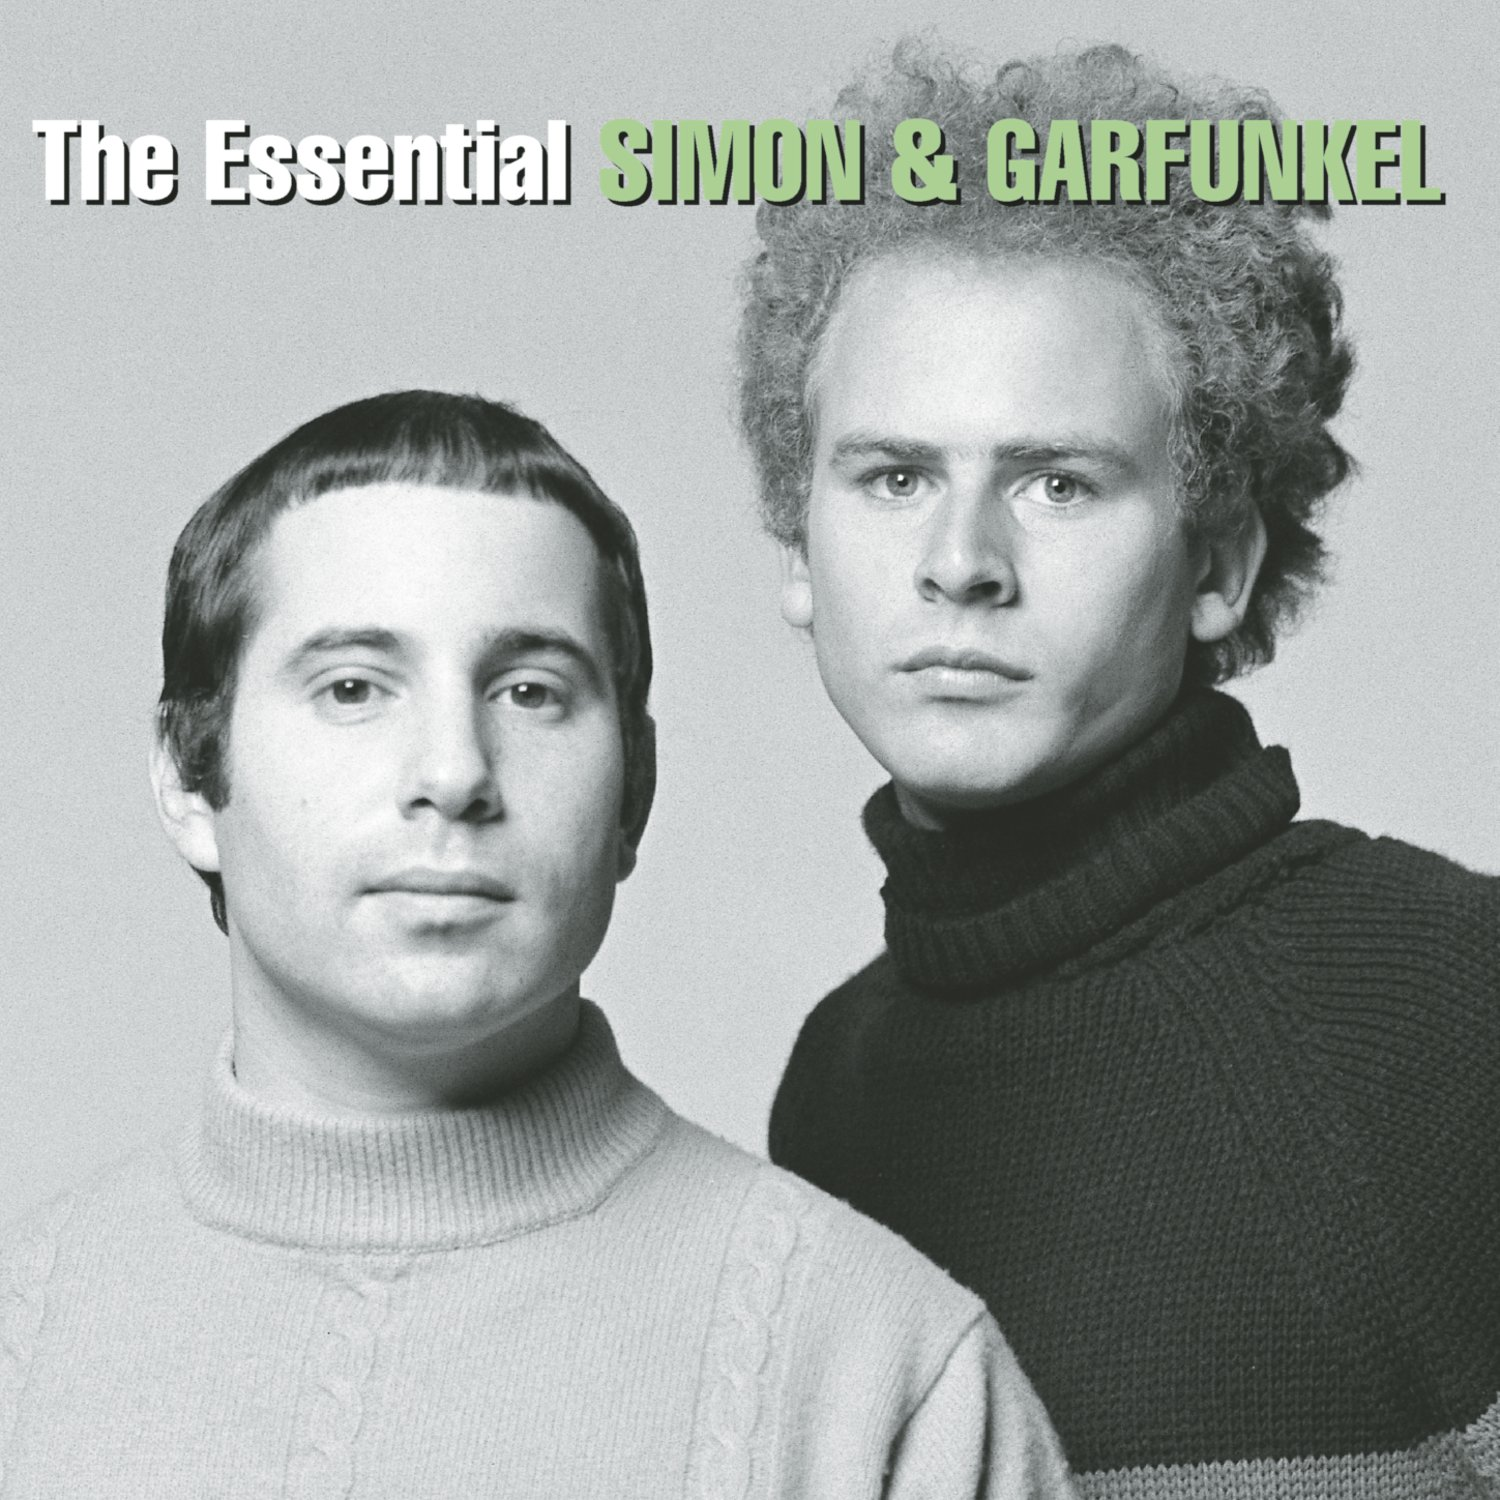 The Essential Simon & Garfunkel by Columbia